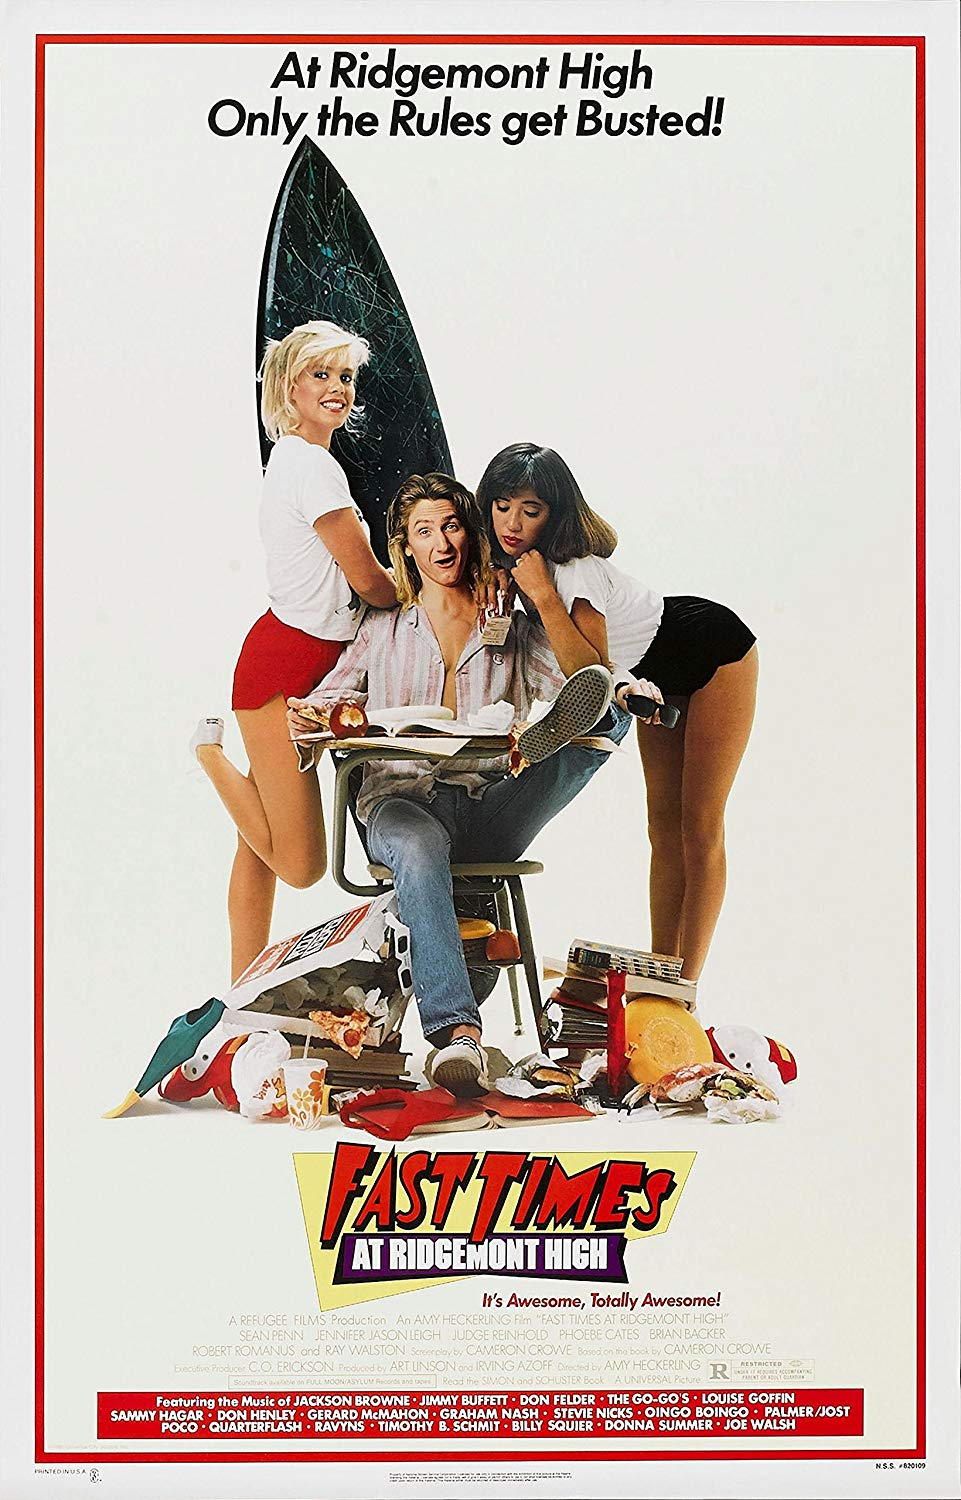 Fast Times at Ridgemont High (1982) - Directed By: Amy HeckerlingStarring: Sean Penn, Jennifer Jason Leigh, Judge Reinhold, Robert Romanus, Brian Backer, Phoebe Cates, Ray WalstonRated: RRun Time: 1h 30mTMM Score: 3 StarsStrengths: CharactersWeakness: It Has Aged